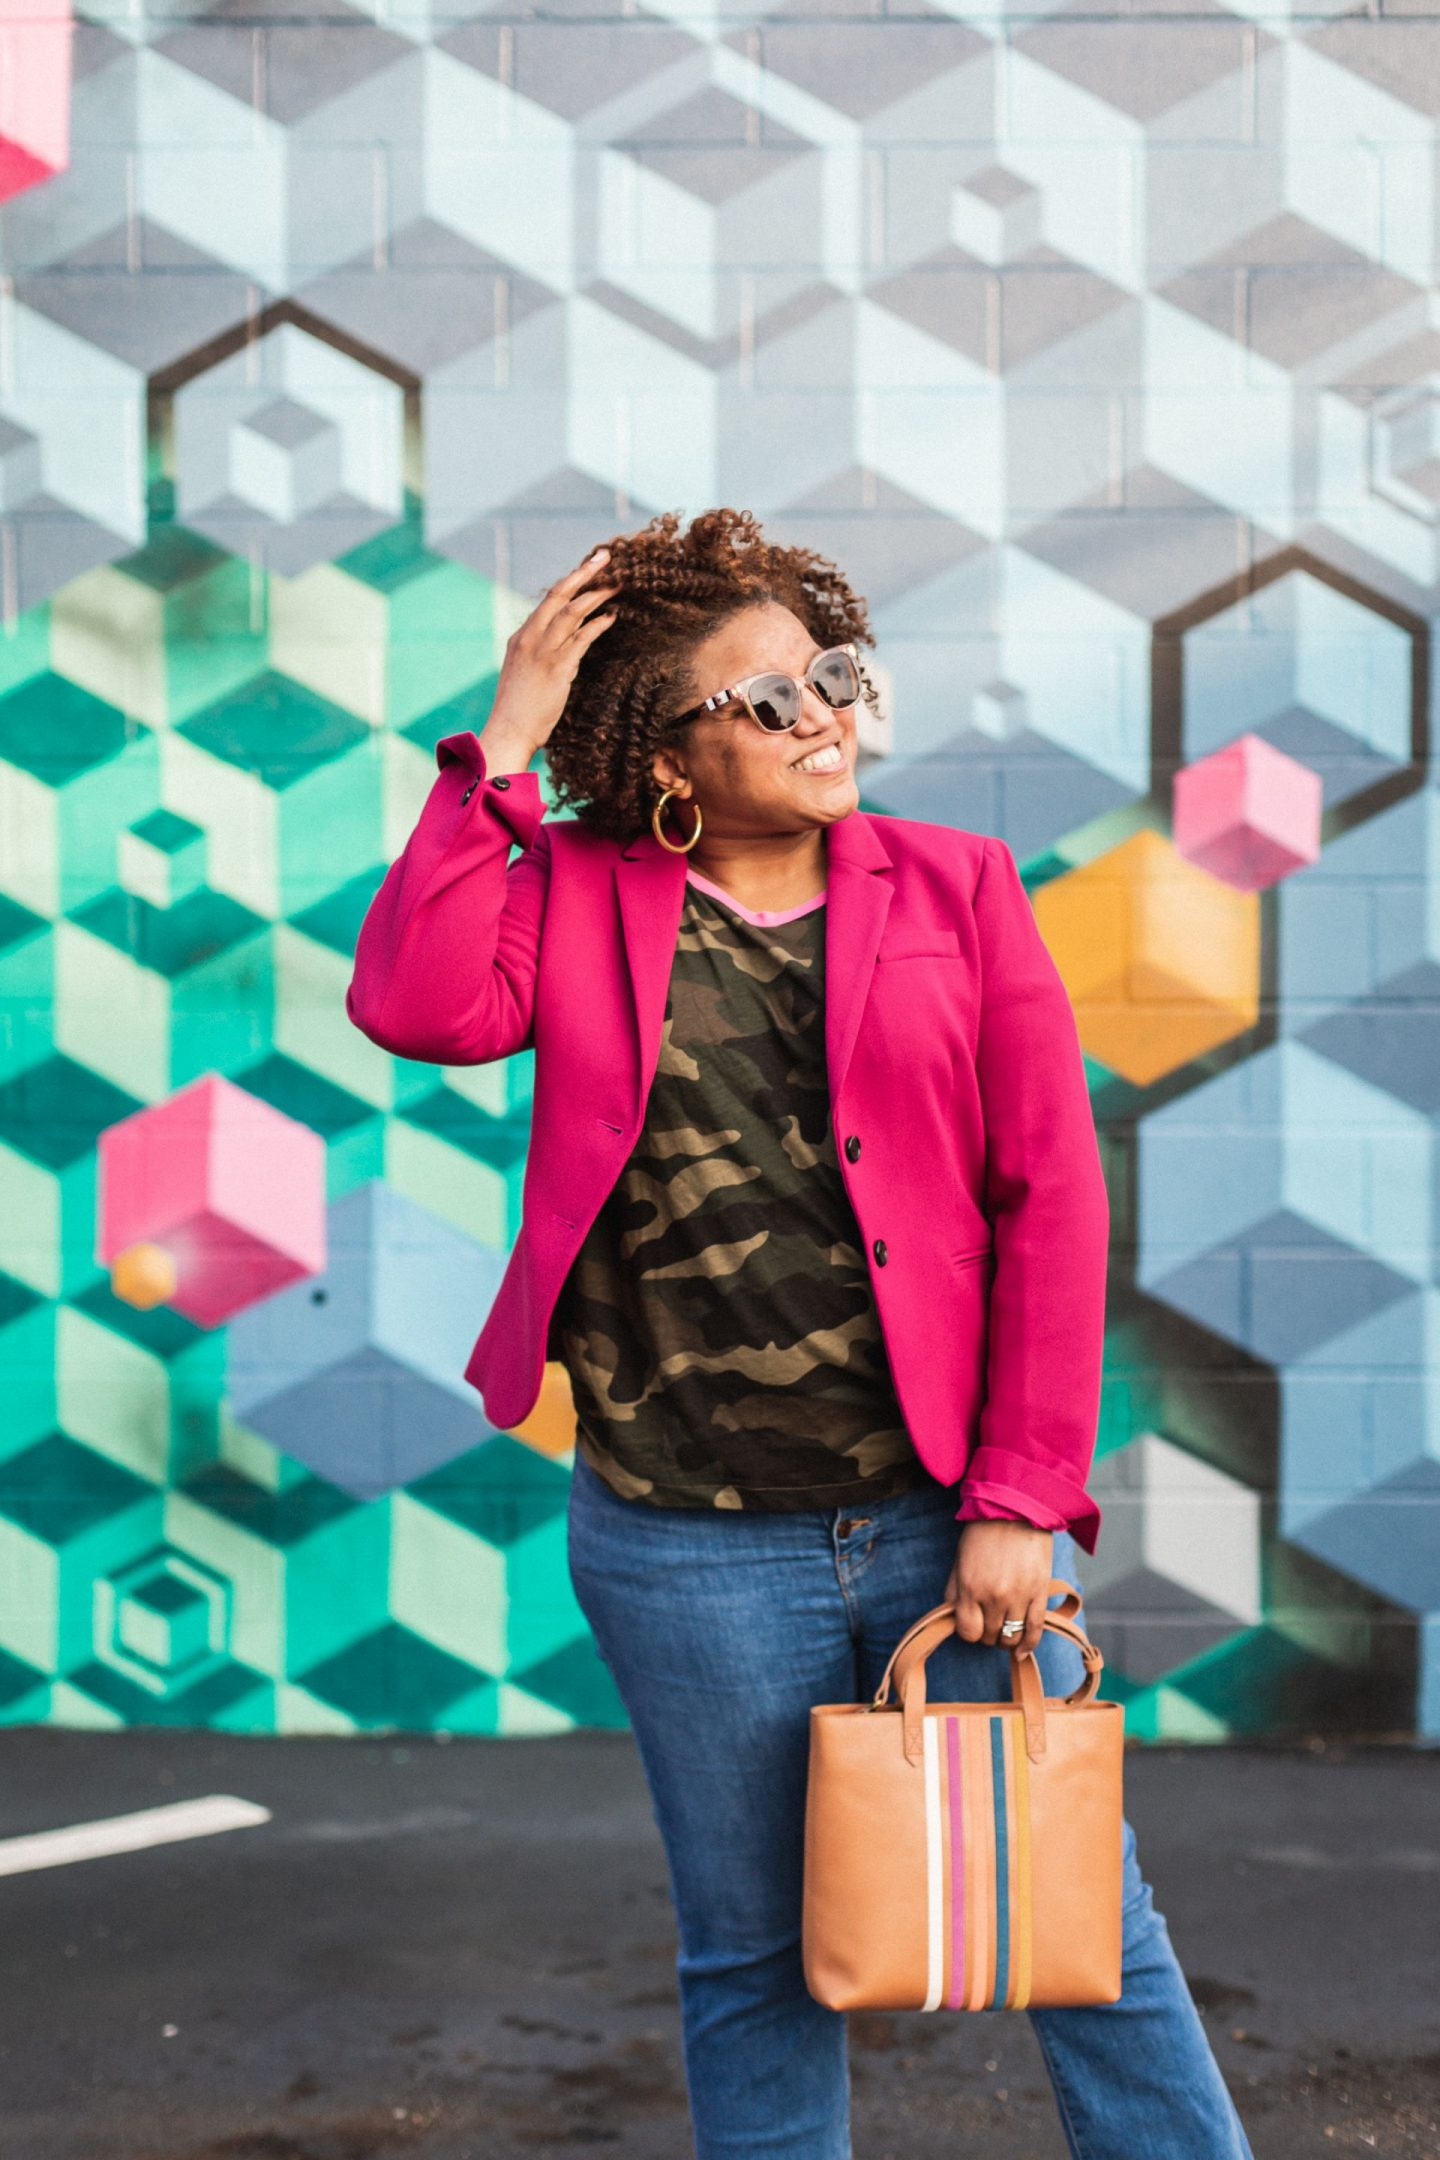 Fall Clothing by popular Kentucky fashion blog, Really Rynetta: image of a woman sitting on a curb and wearing a Nordstrom pink blazer, Nordstrom camouflage shirt, white Converse sneakers, Nordstrom crop jeans, and Nordstrom leather tote.